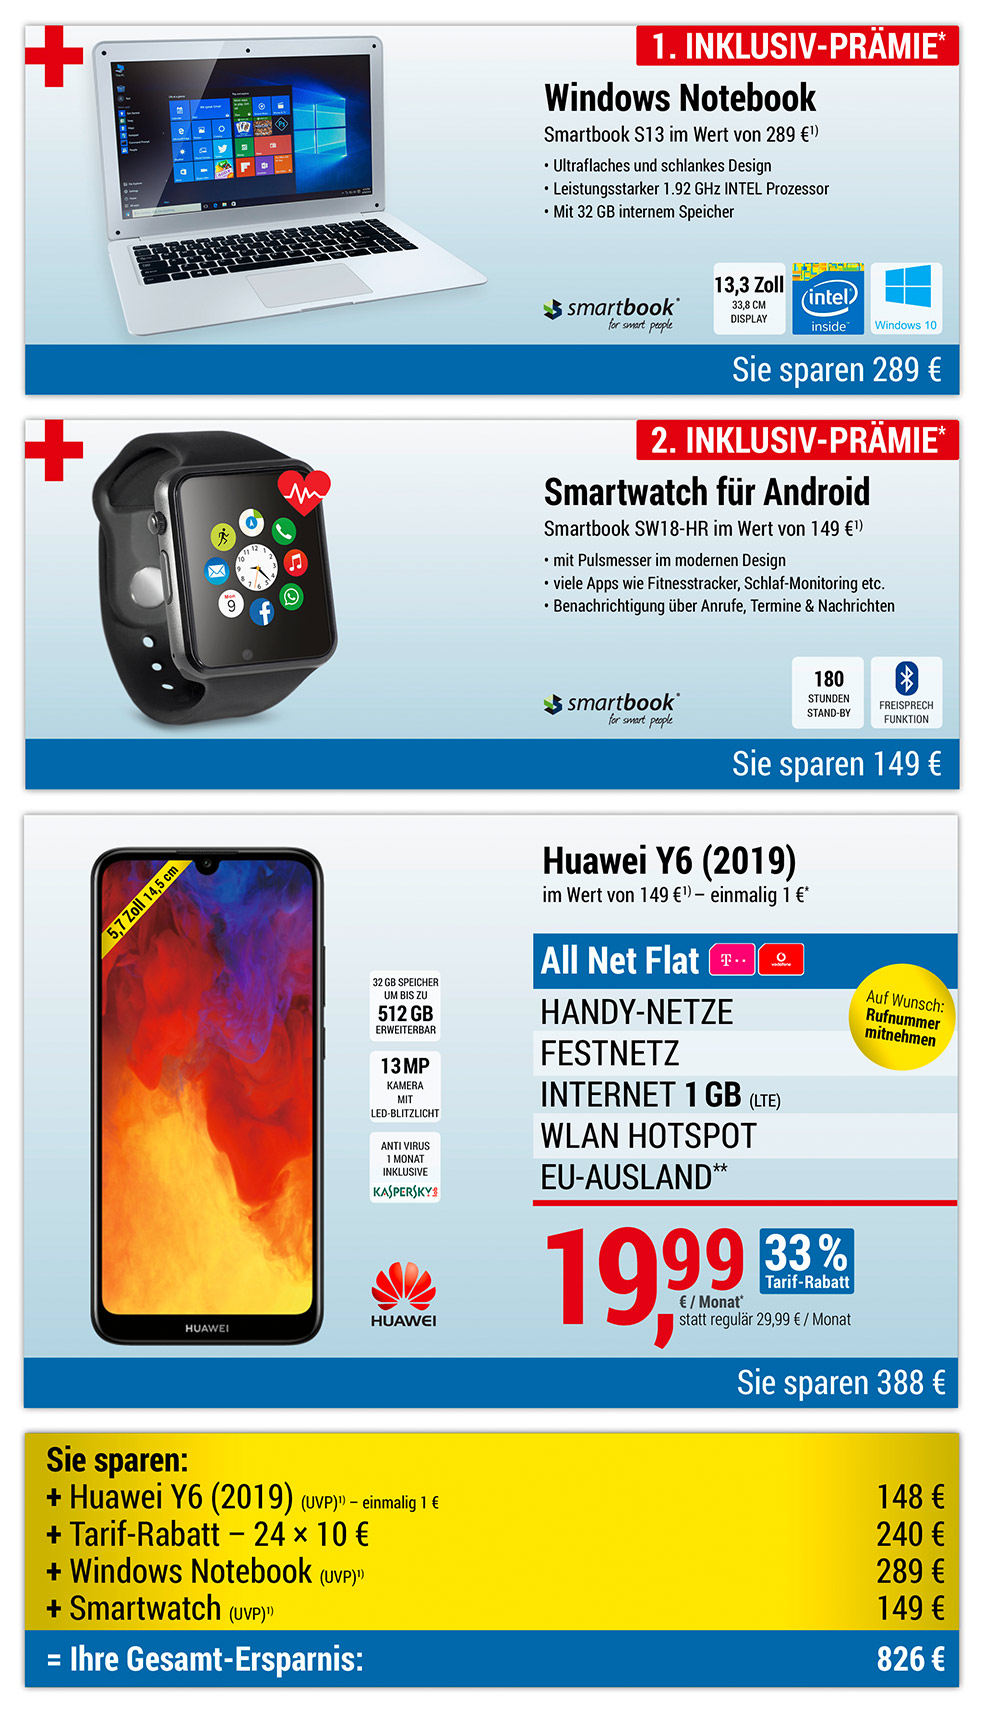 Windows Notebook + Smartwatch INKLUSIVE + Huawei Y6